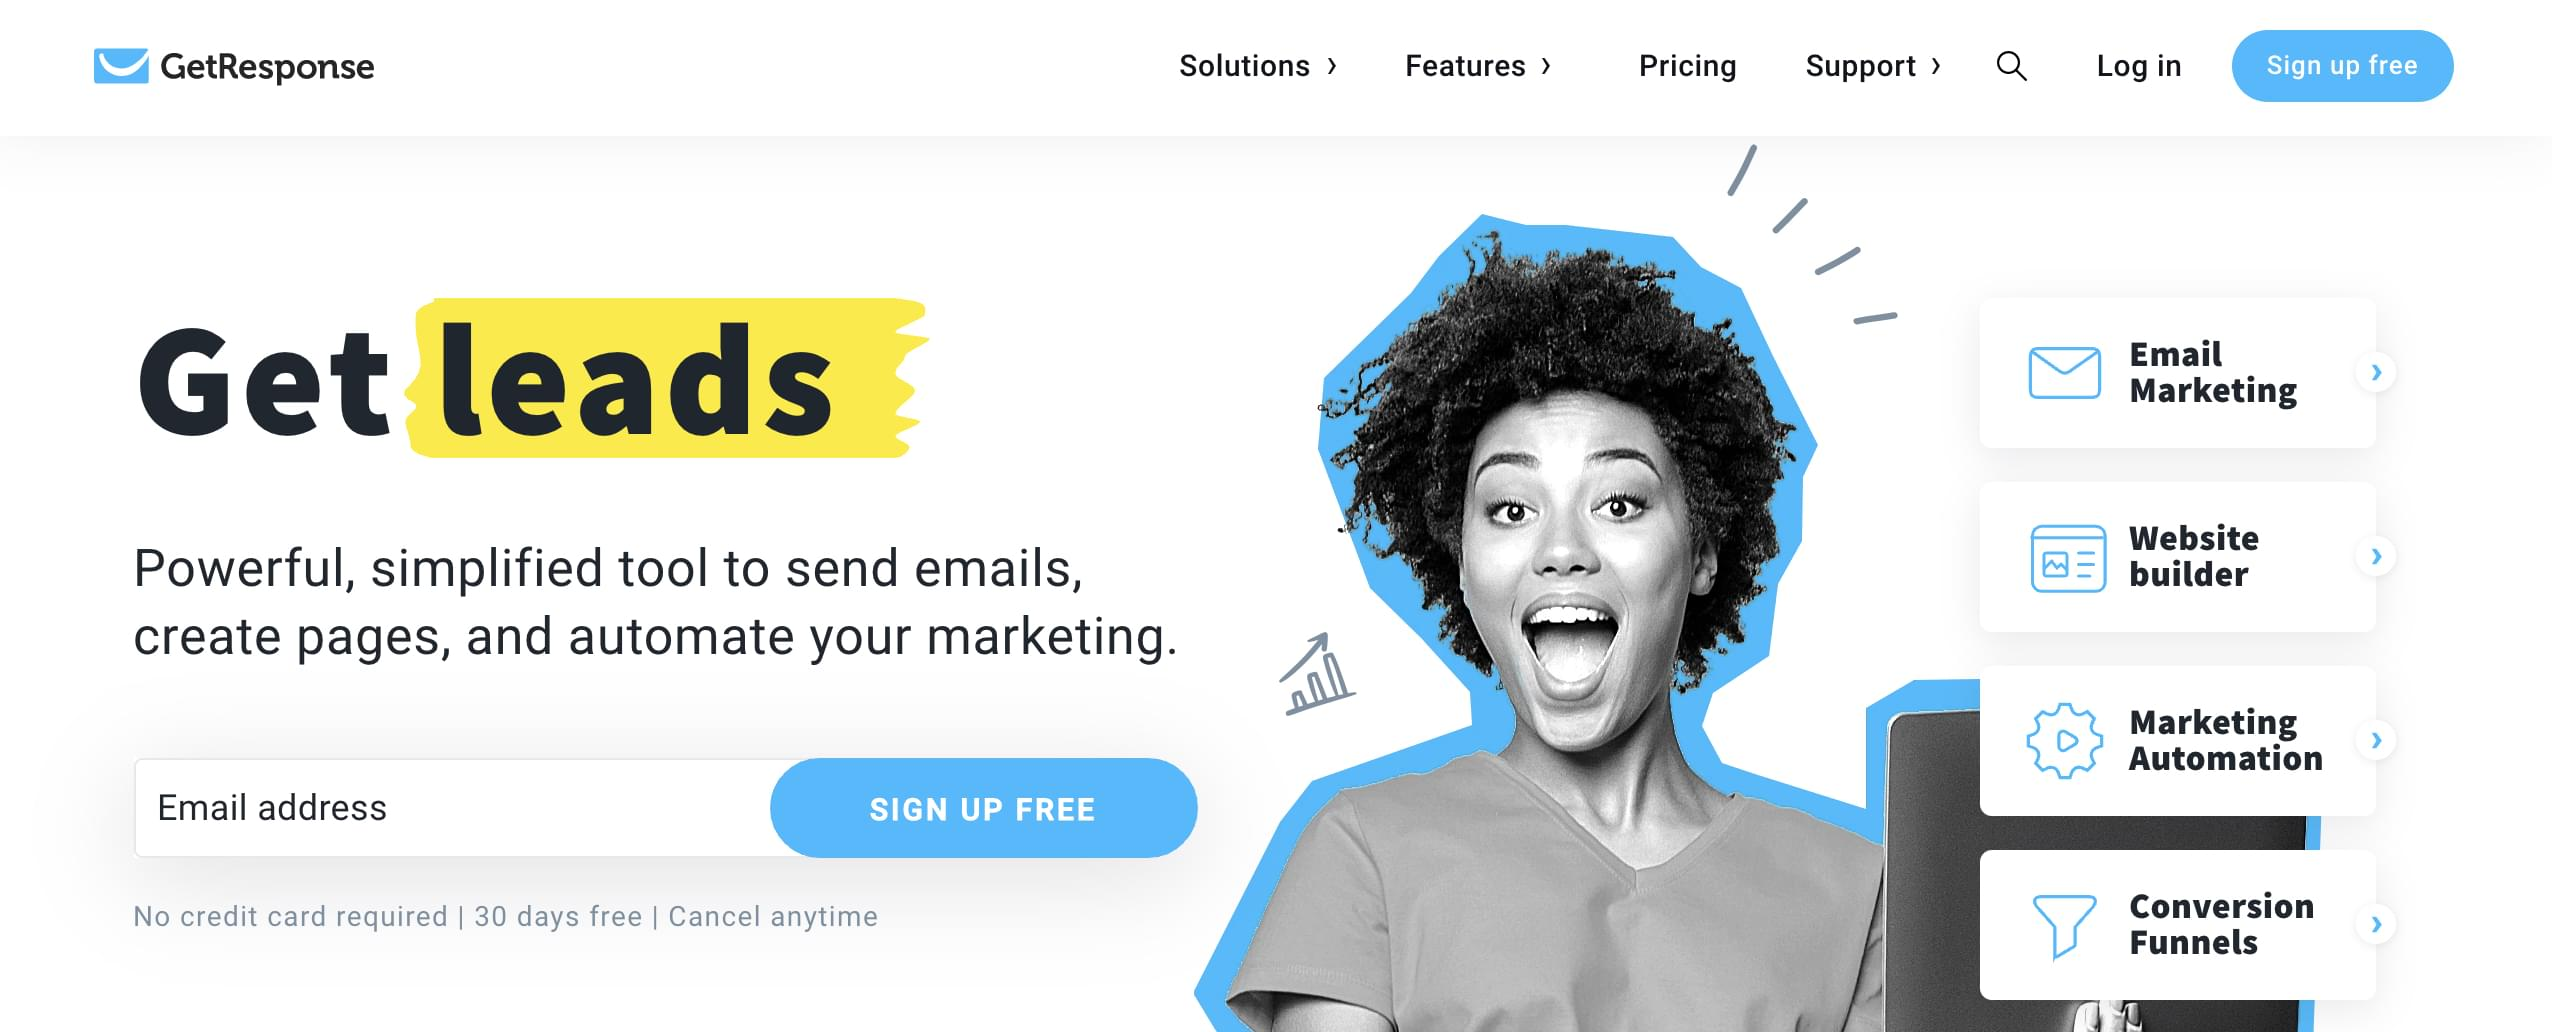 Email marketing automation tool GetResponse